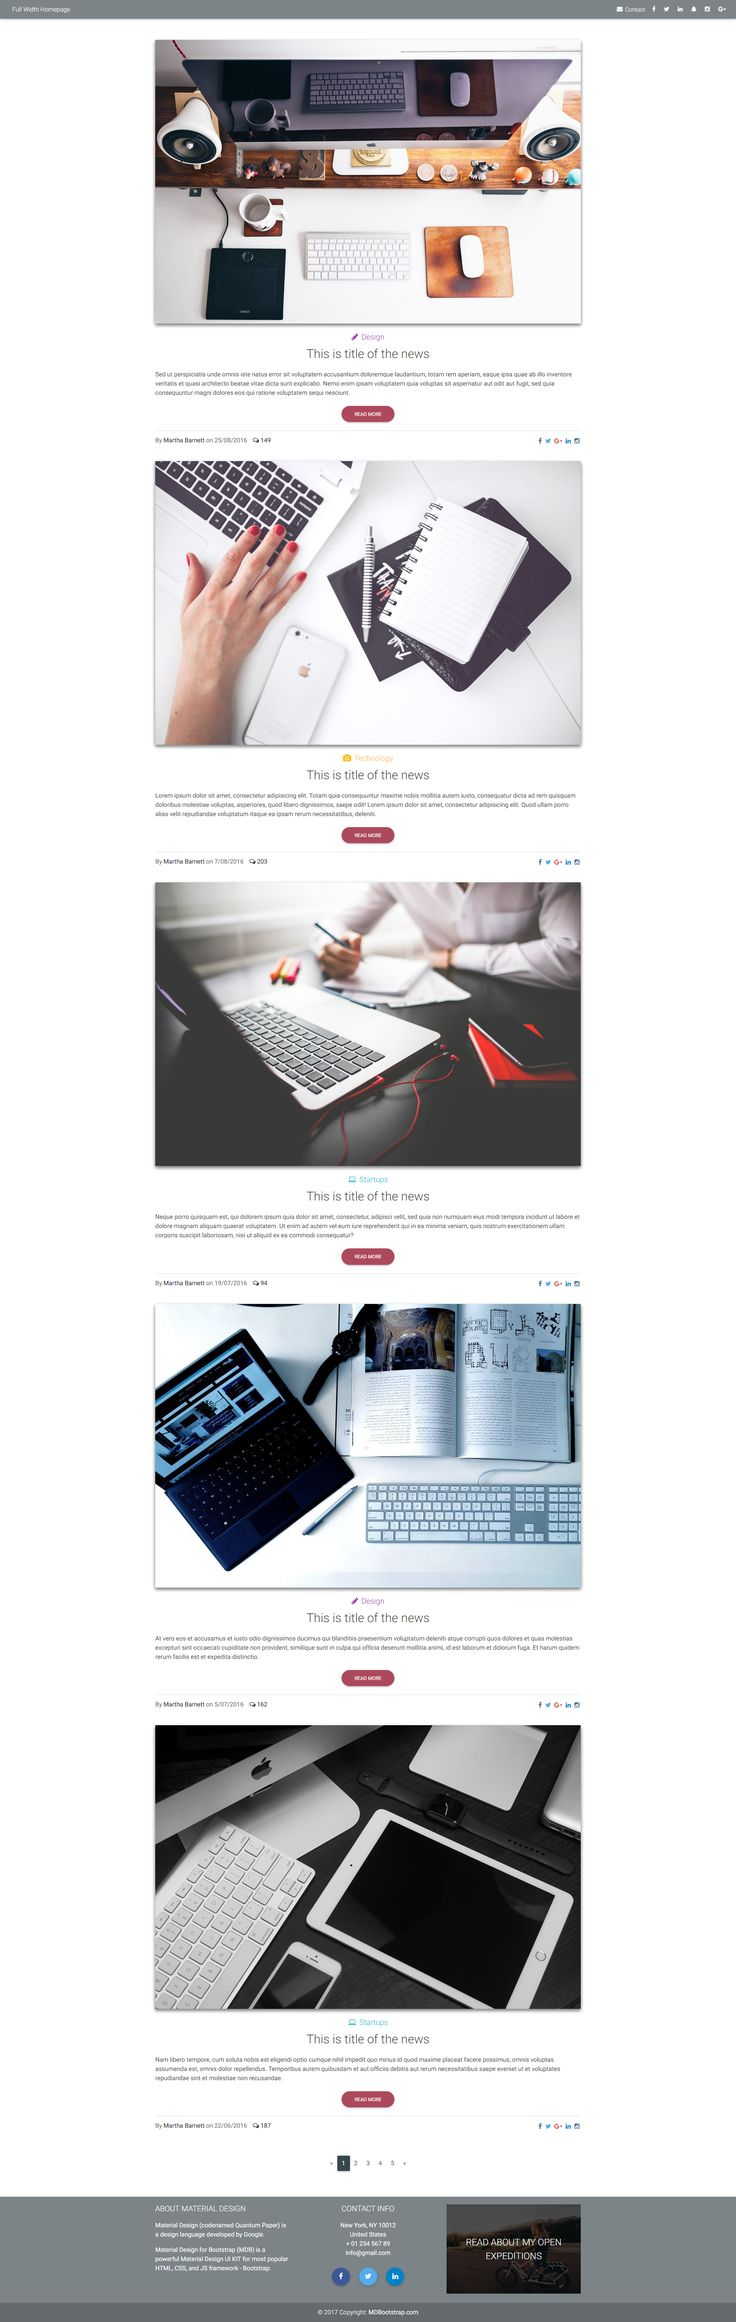 Material Design Blog Homepage Template, based on Bootstrap.